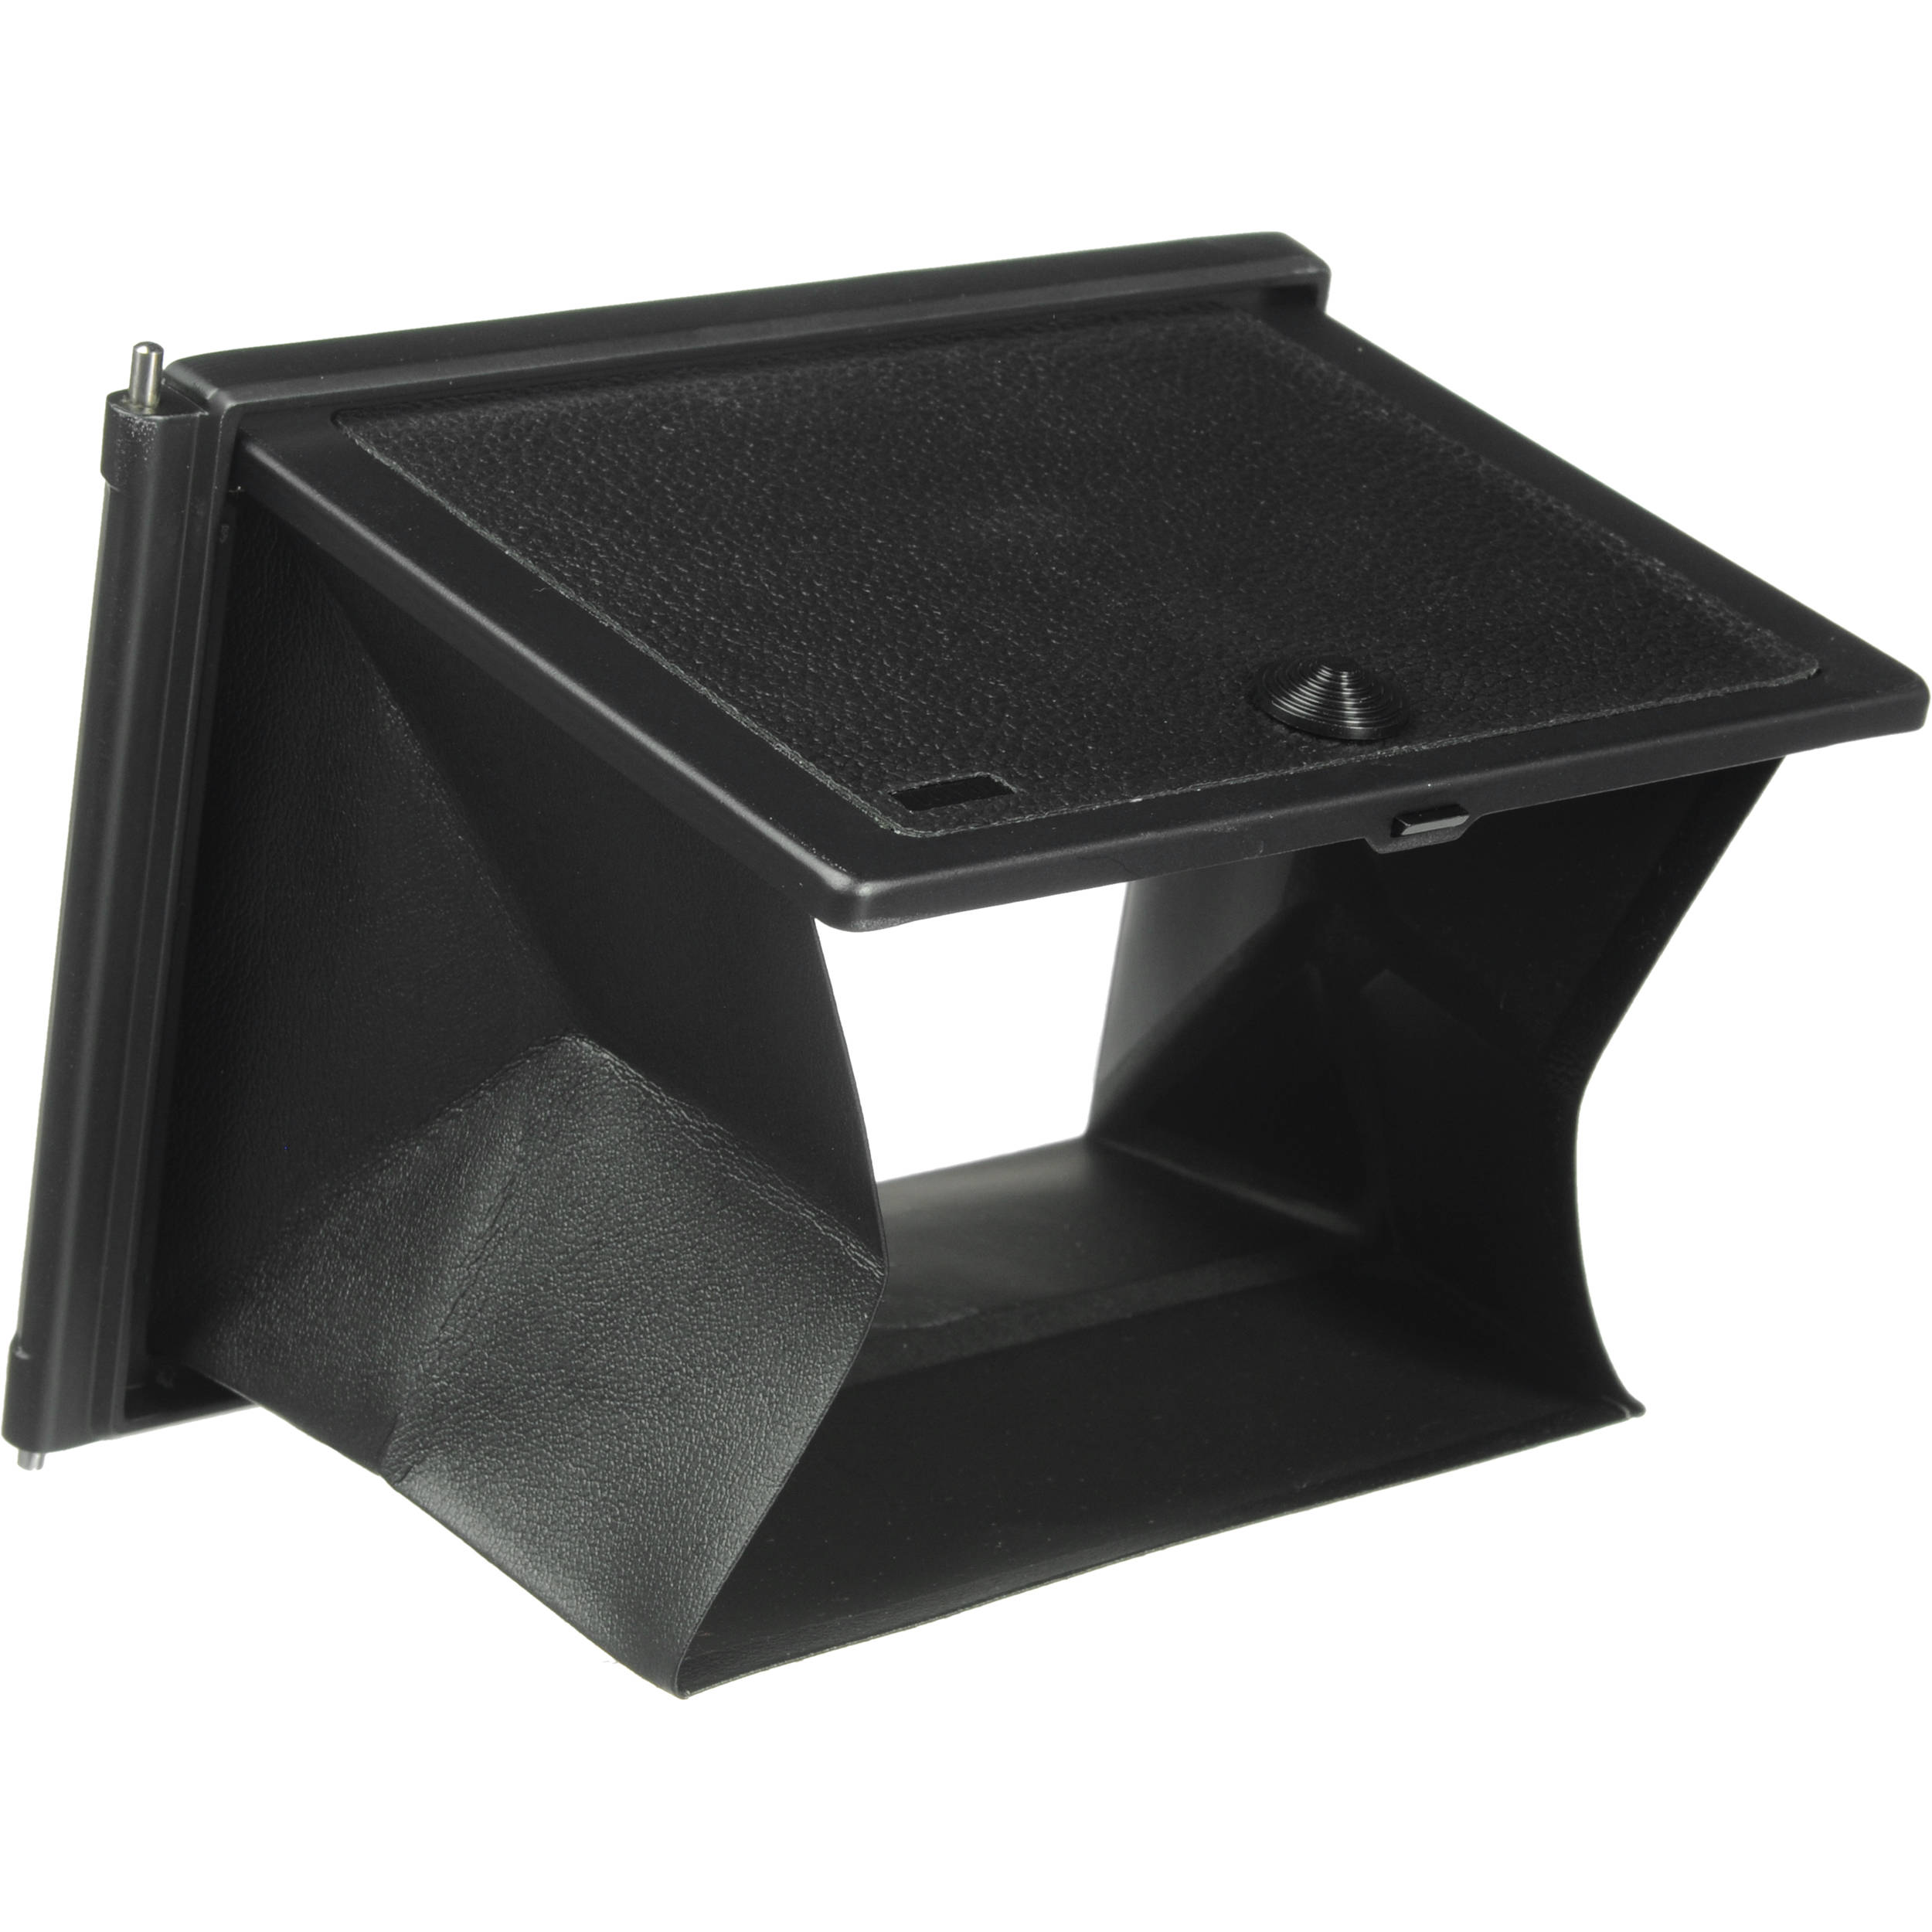 Toyo view 4x5 folding focusing hood groundglass cover 180 808 for Chambre 4x5 folding